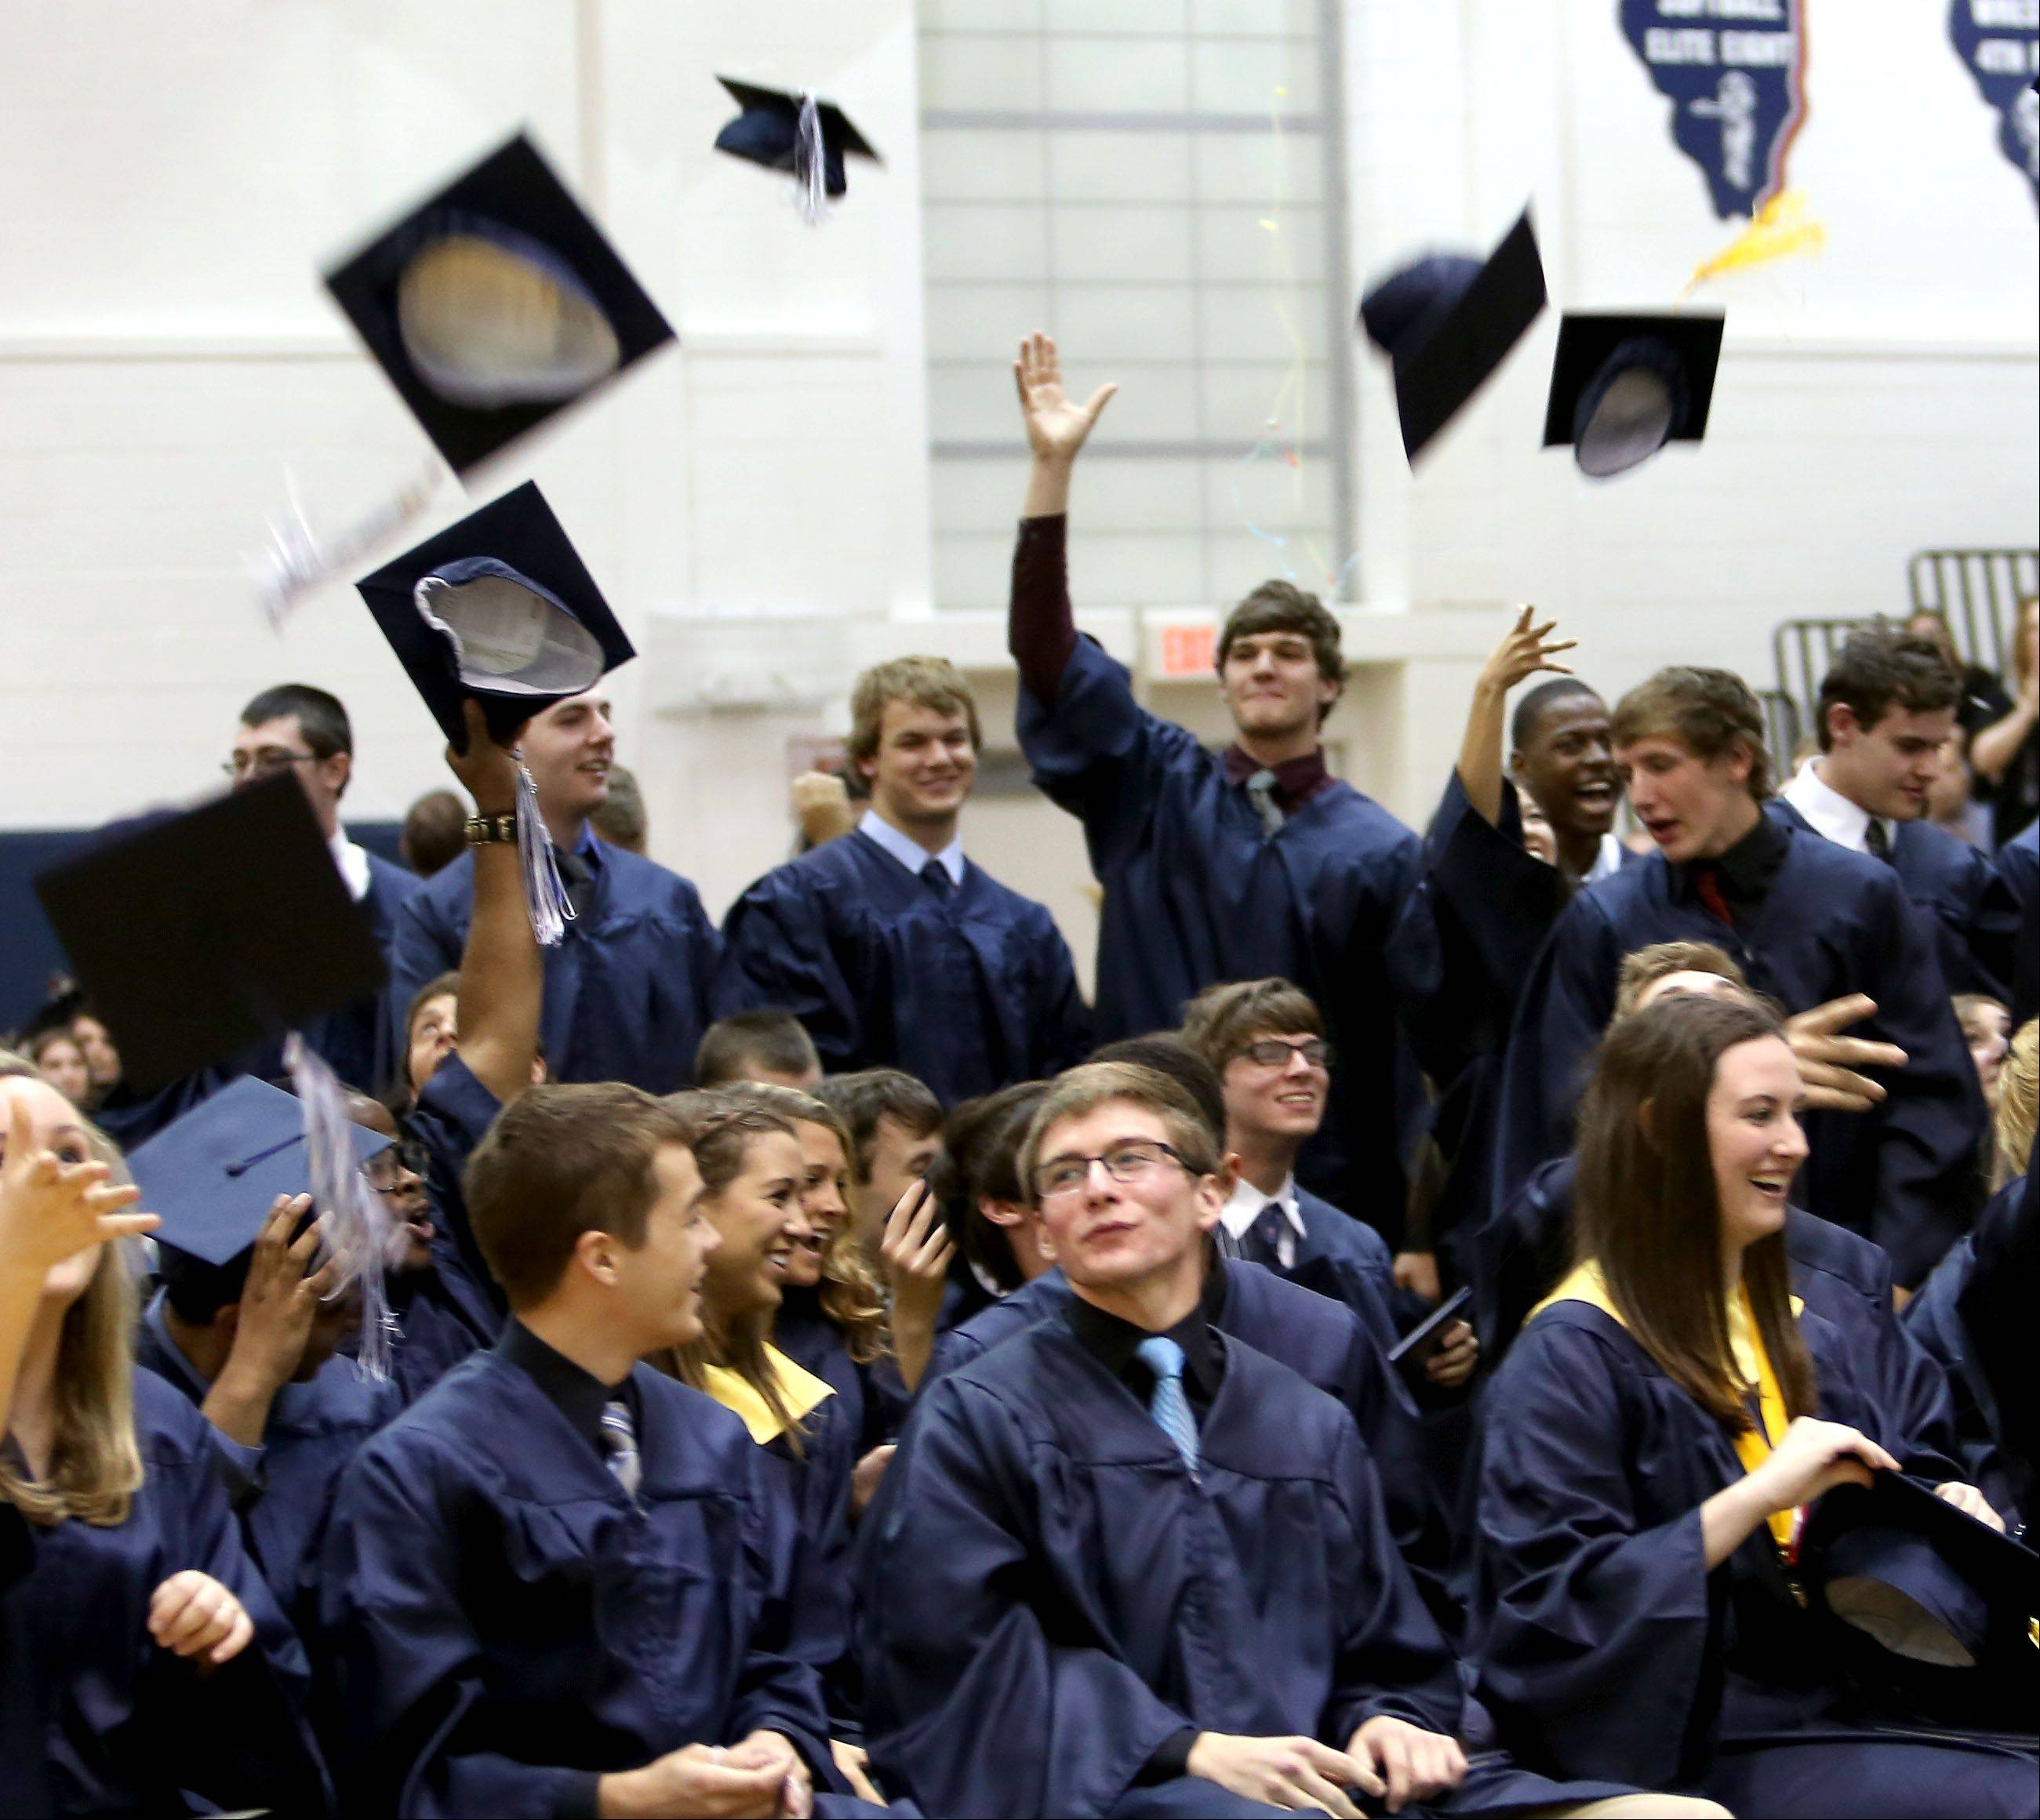 Caps go up in the air after the graduation at Lisle High School on Friday.